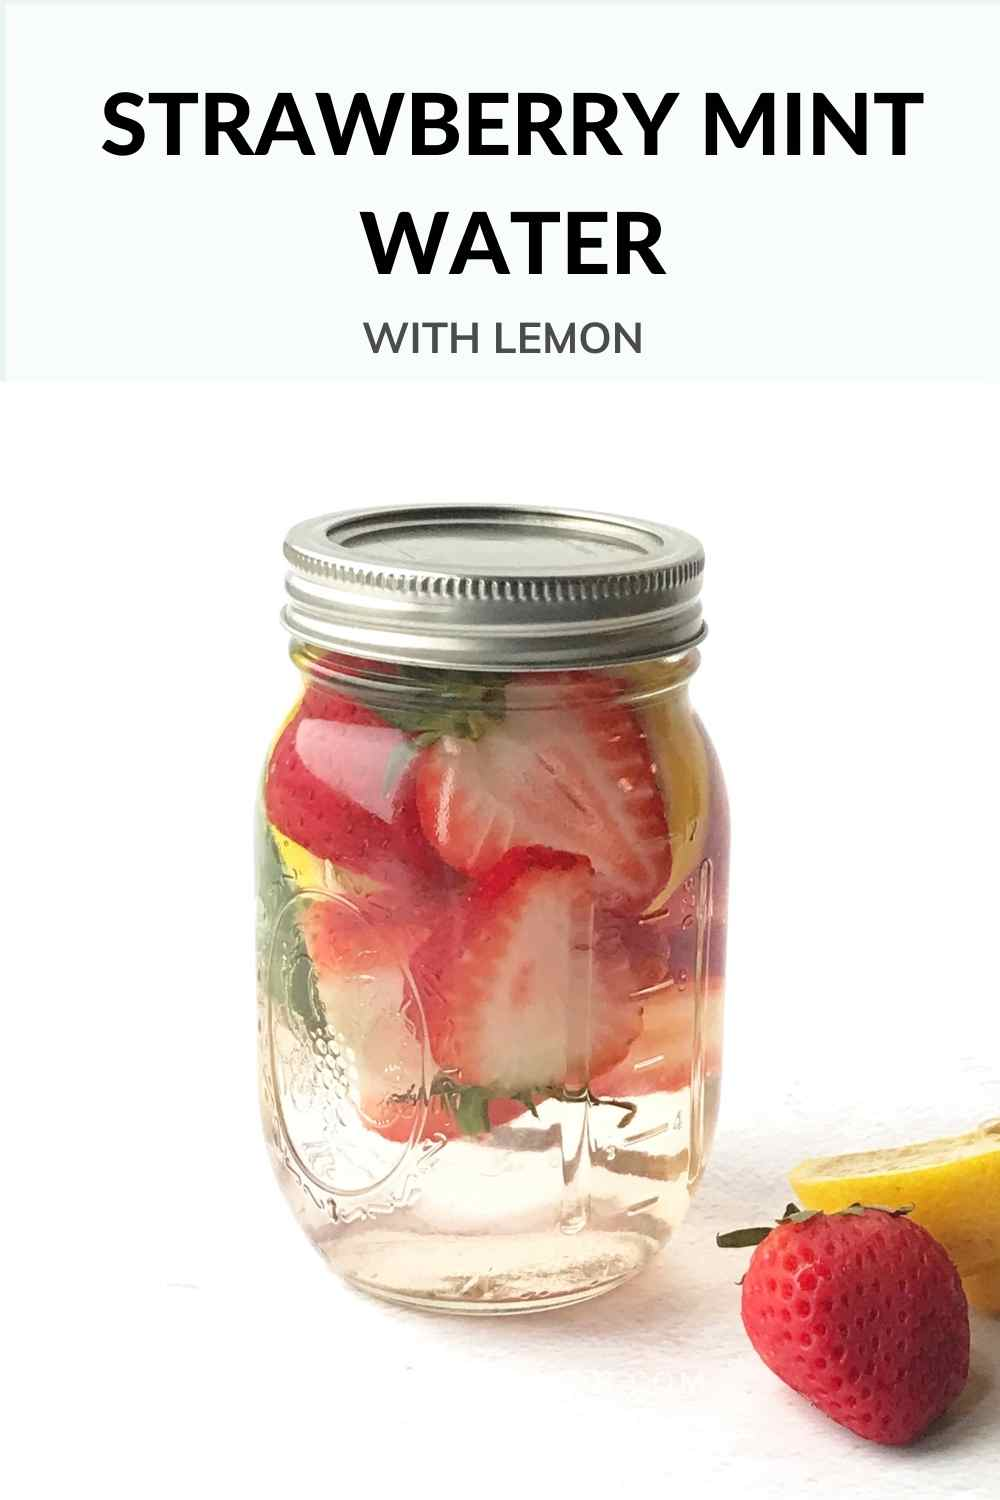 Strawberry Mint water with lemon